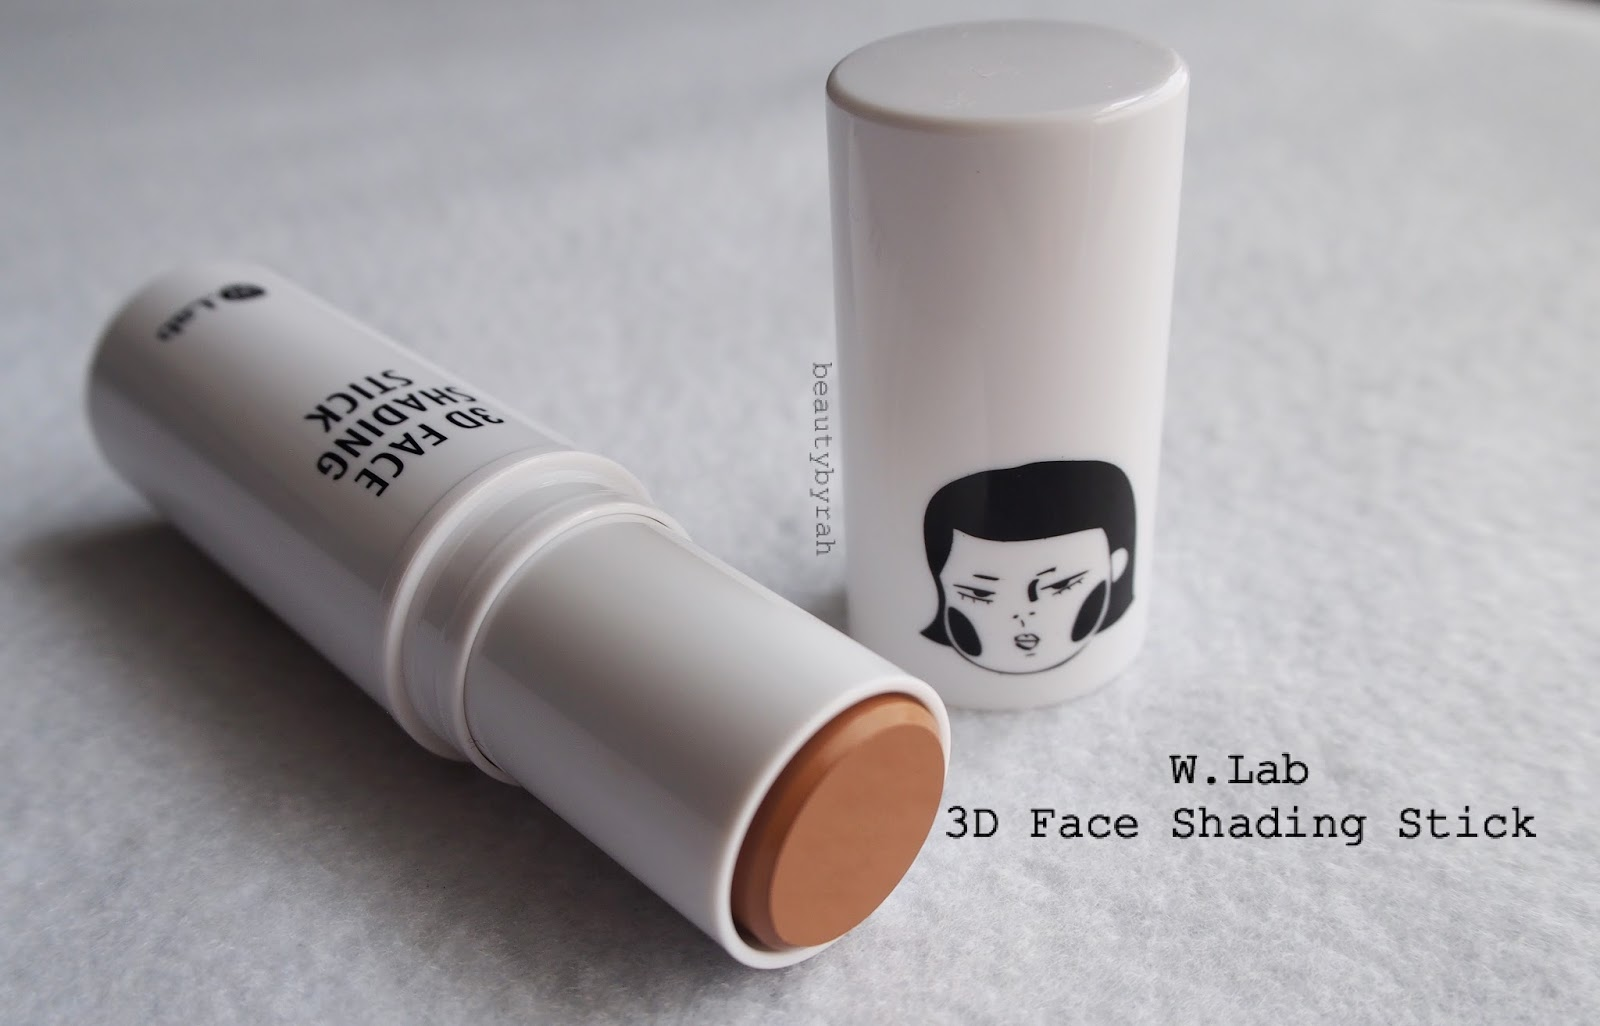 w.lab 3D Face Shading Stick Review